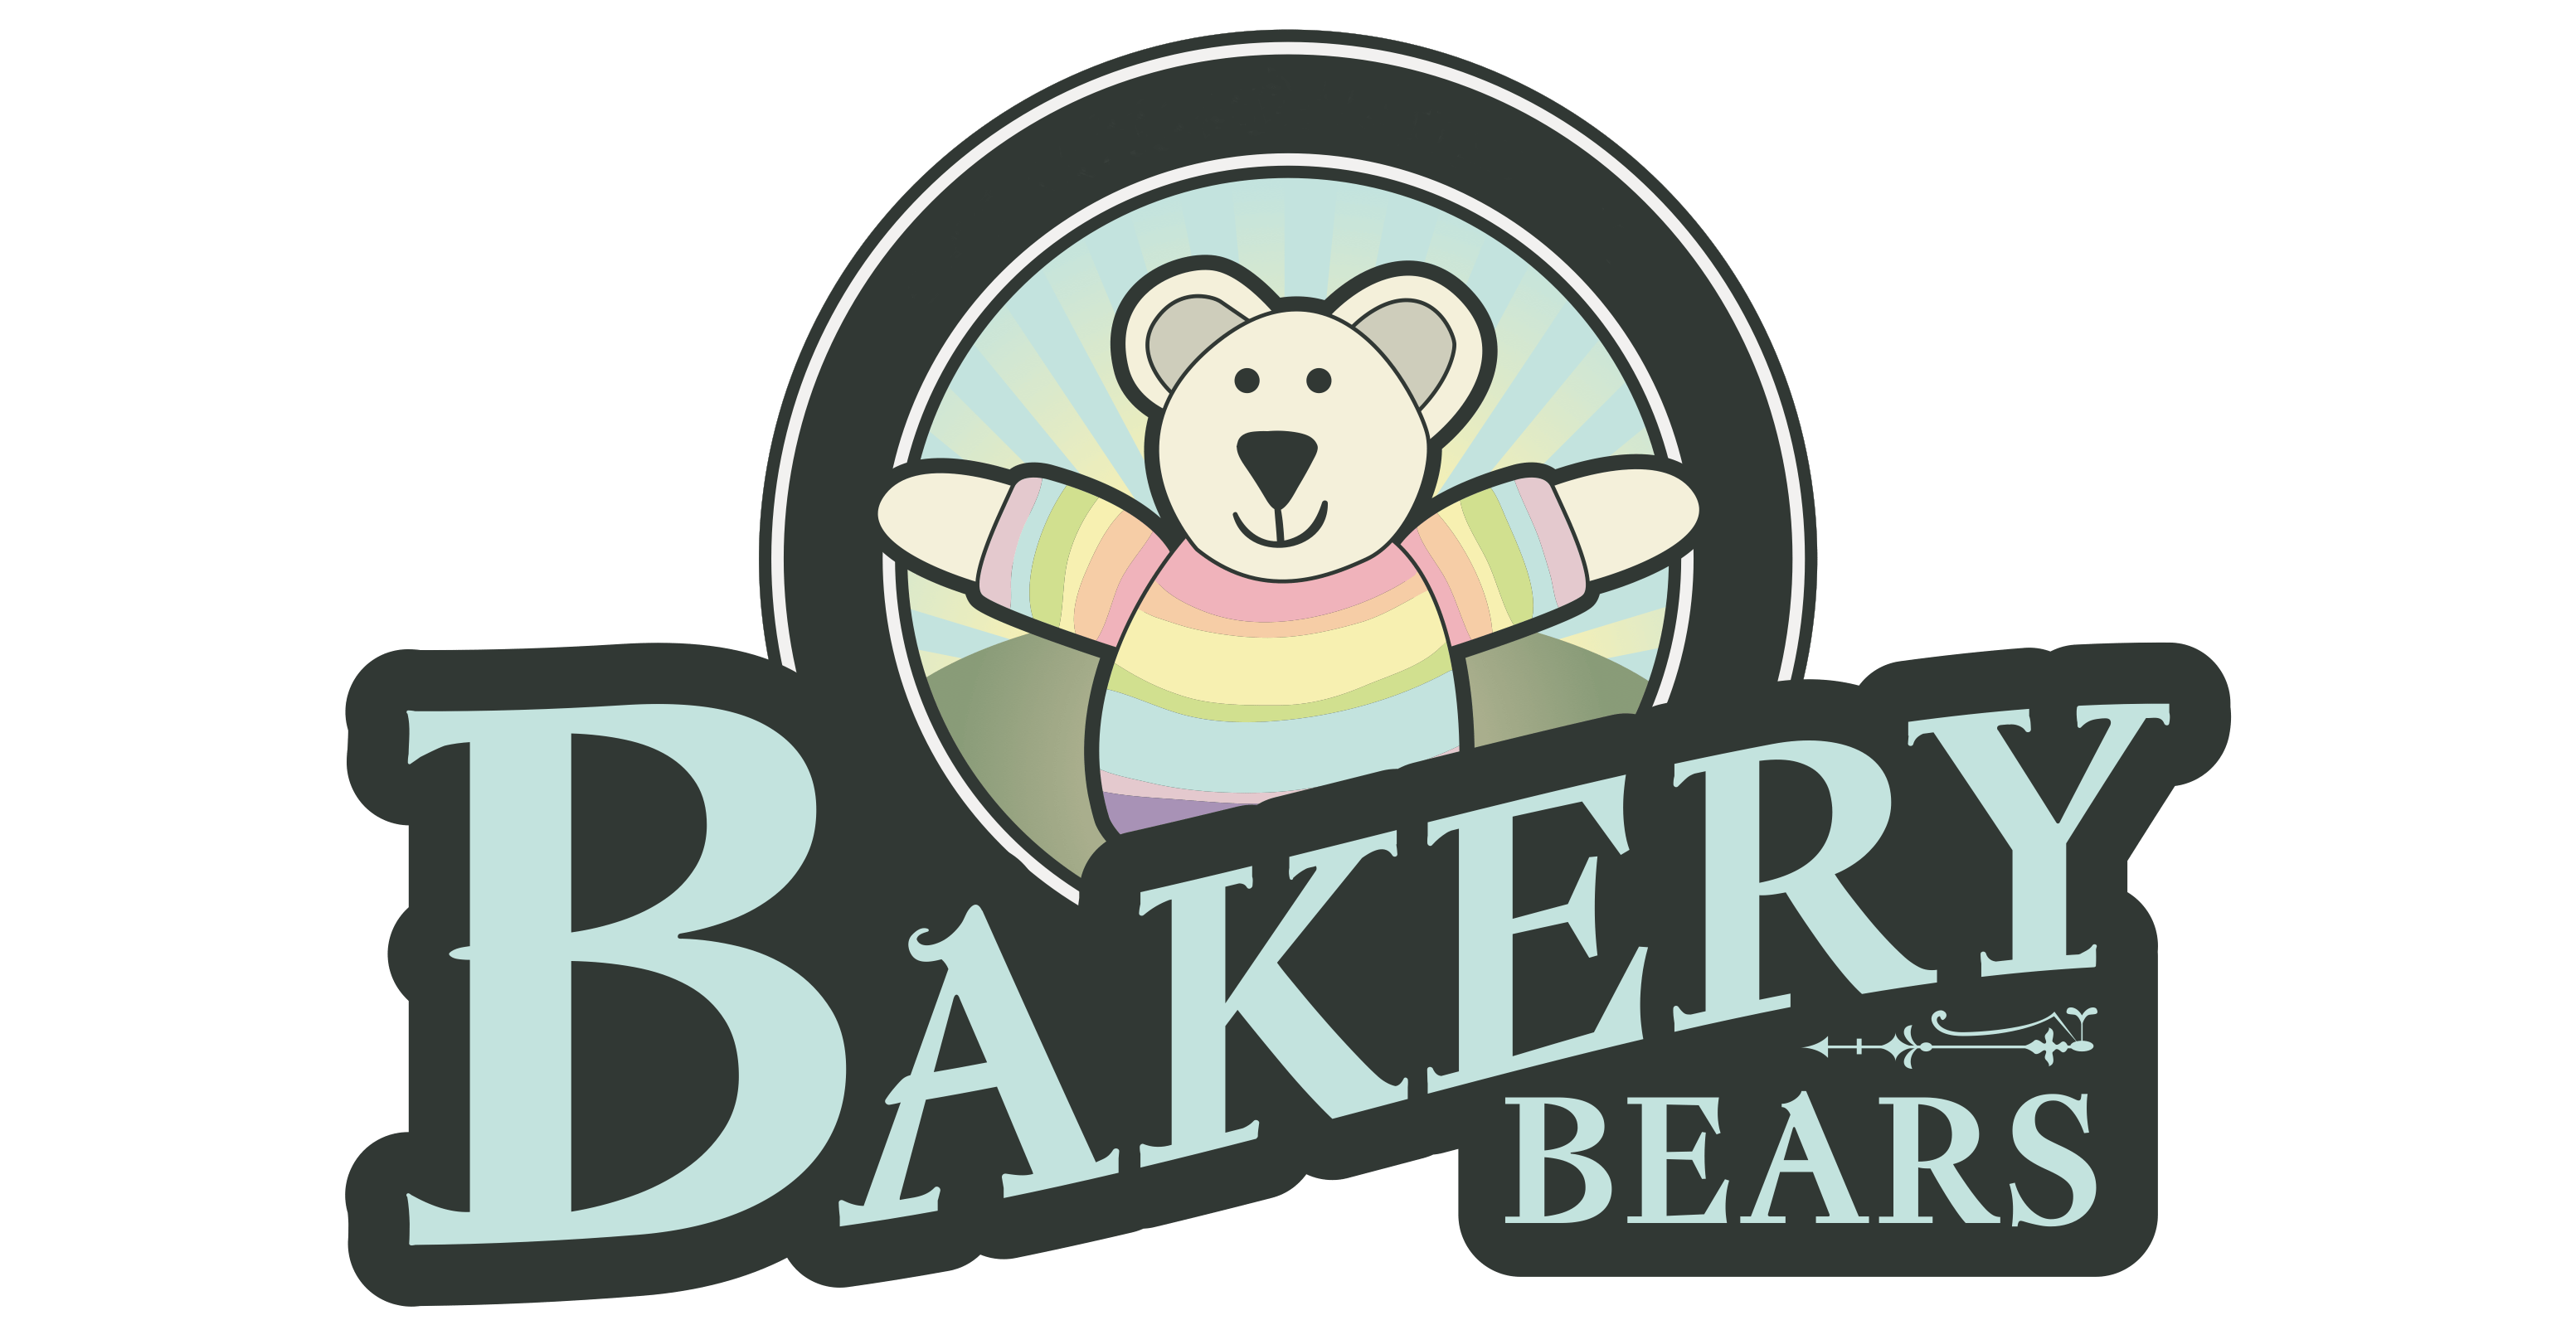 The Bakery Bears